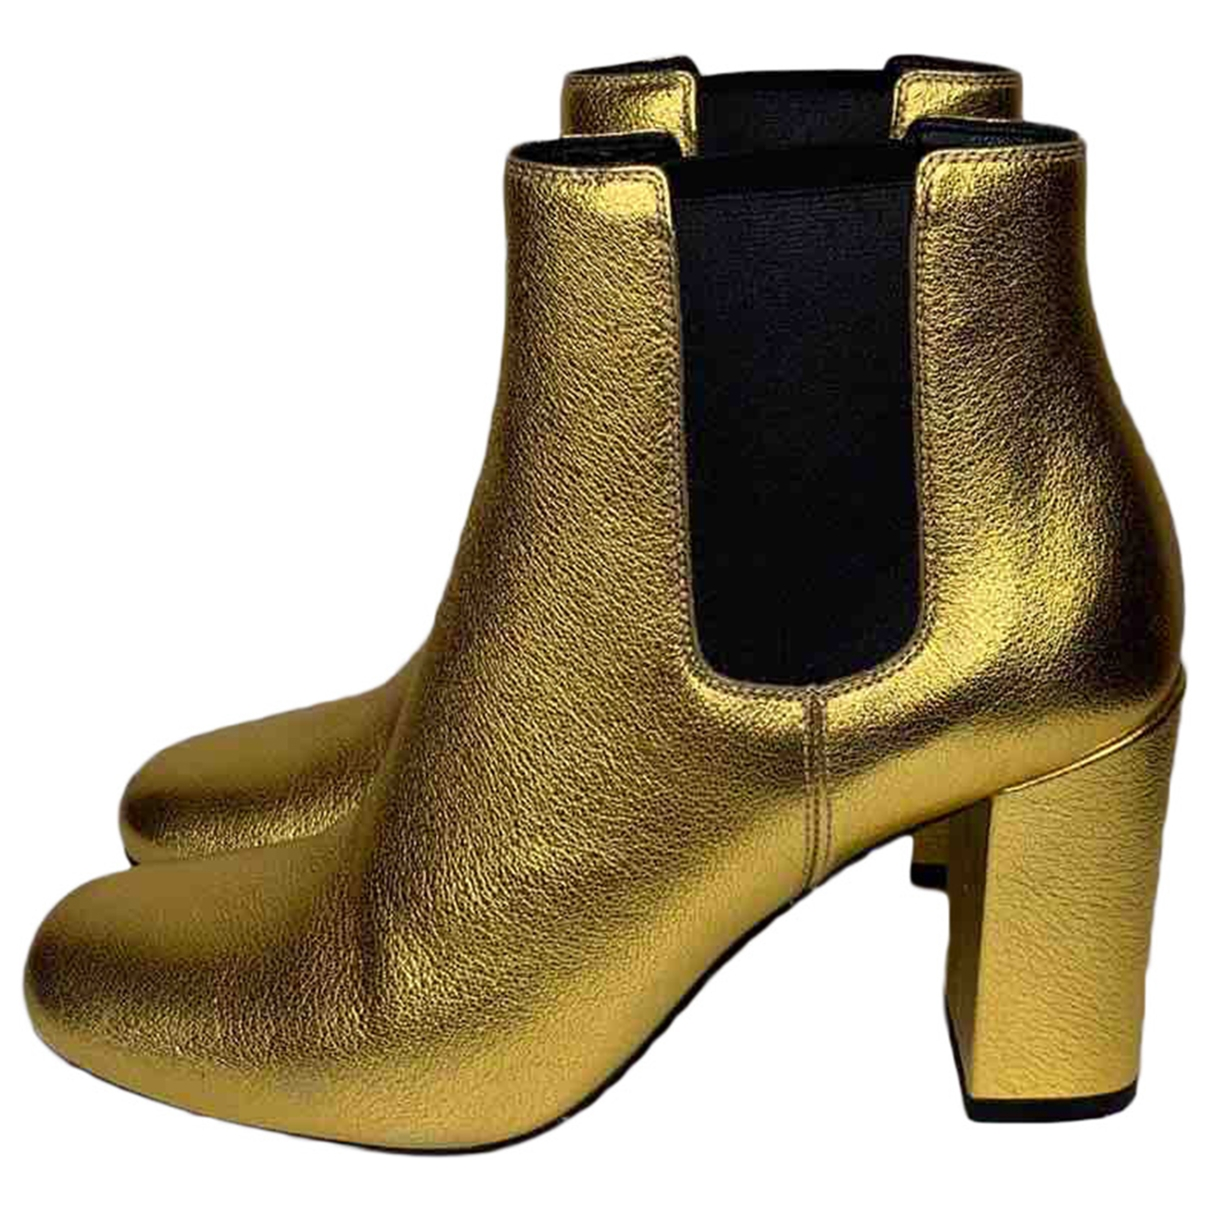 Saint Laurent \N Gold Leather Ankle boots for Women 36.5 EU